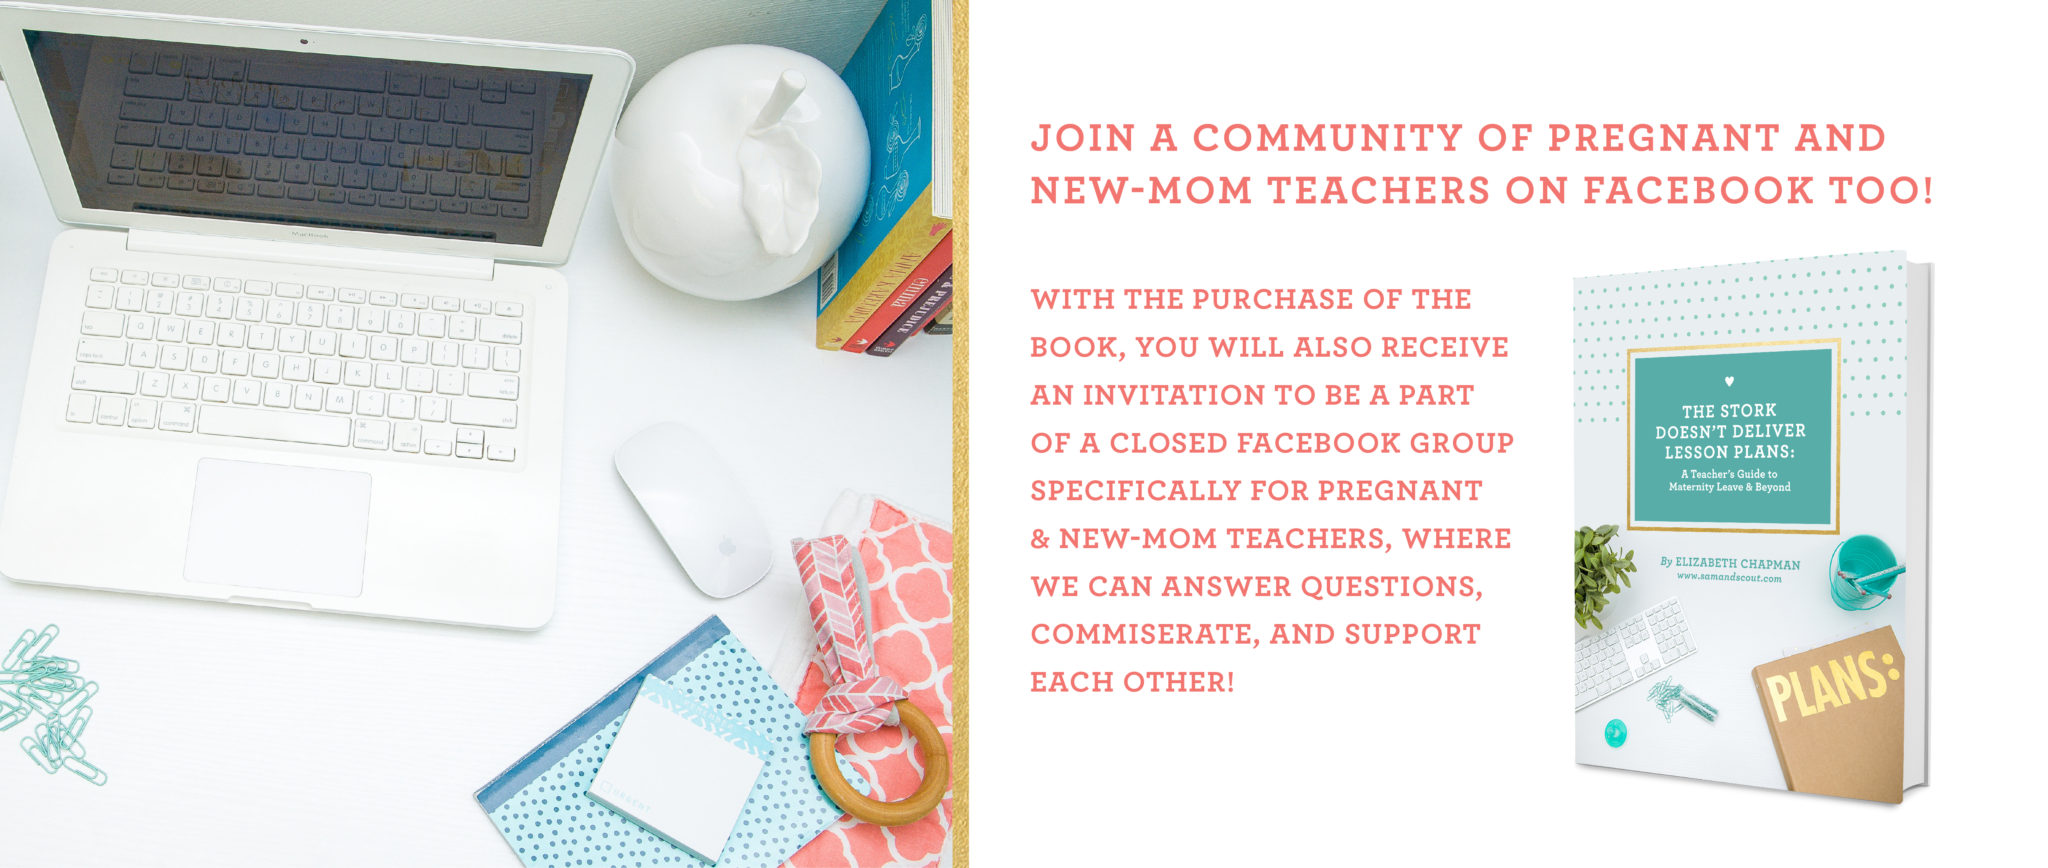 A Facebook page for pregnant and new teacher-moms!!